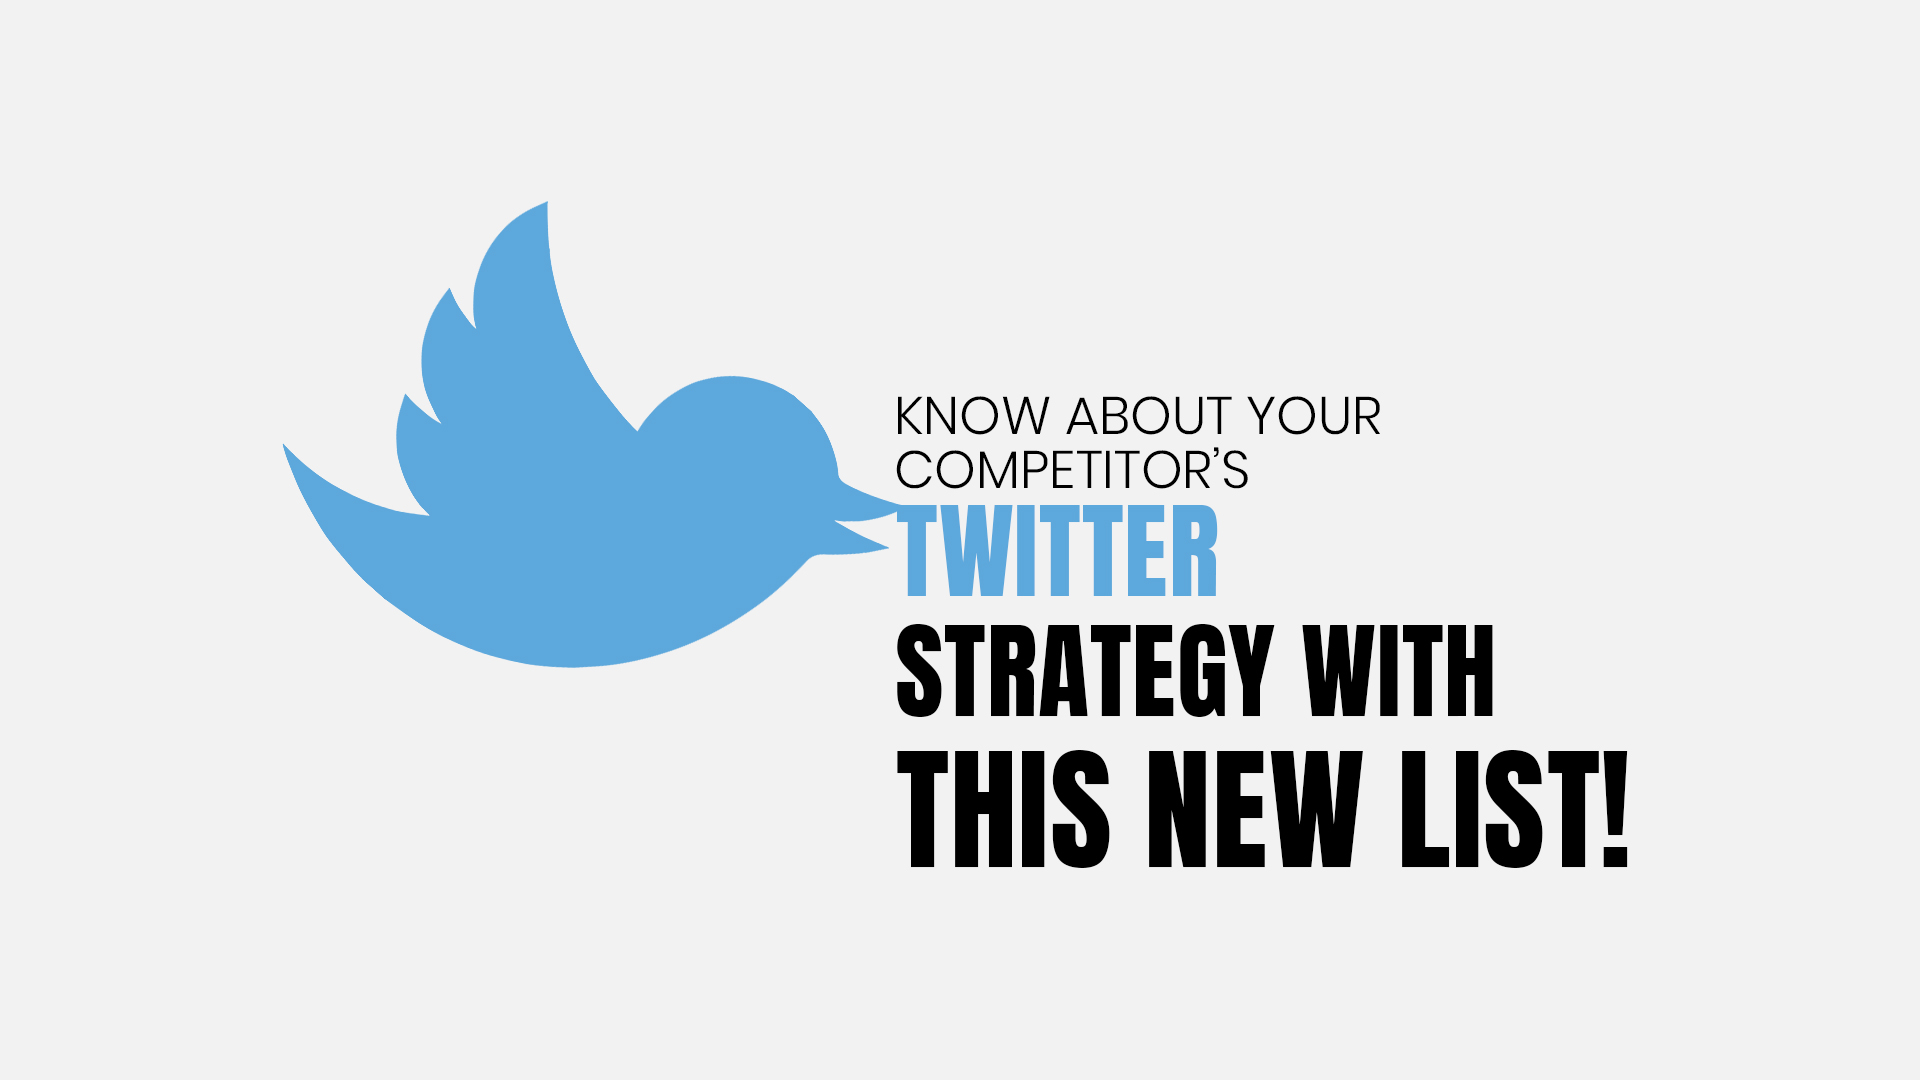 Know About your Competitor's Twitter Strategy with this New List!